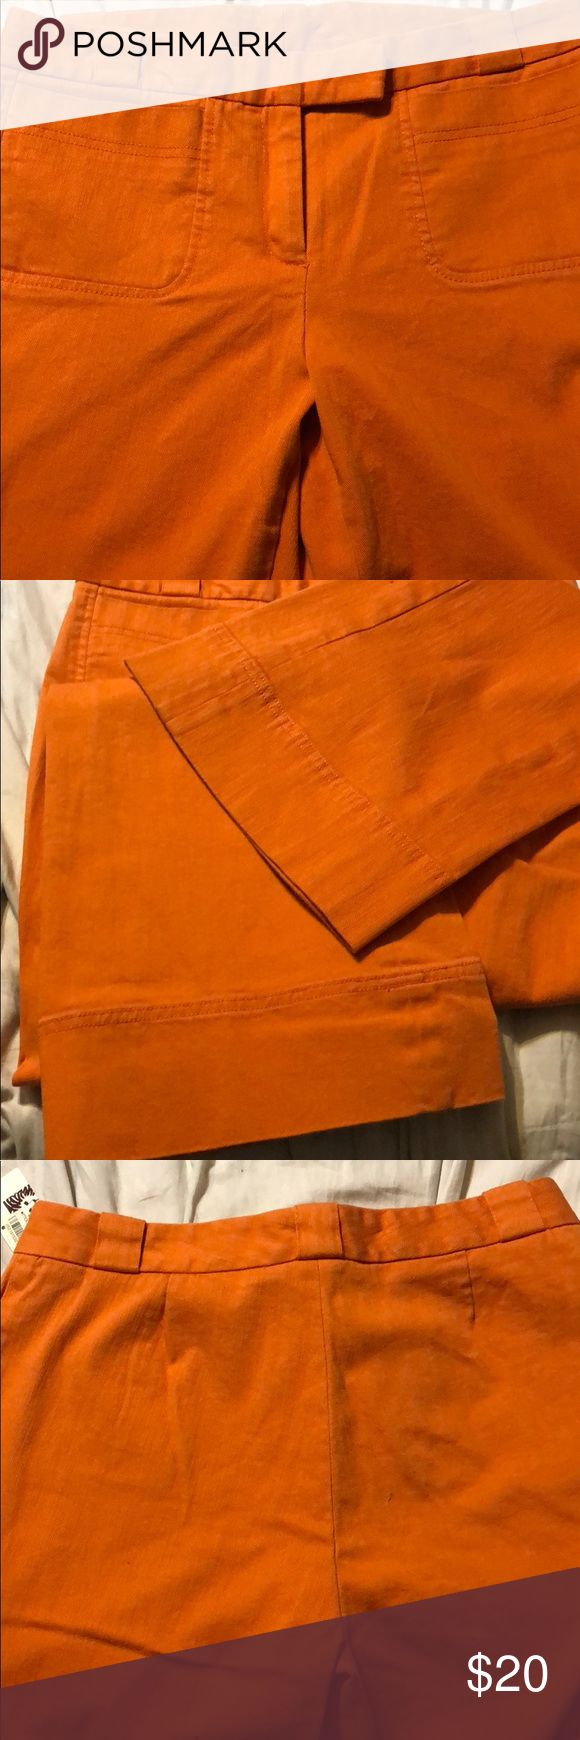 Anne Klein Clementine Sutton Place Pants Anne Klein size 6 Clementine orange Sutton Place 99% cotton 1% spandex 2 Pocket Pants NWT Anne Klein Pants Trousers